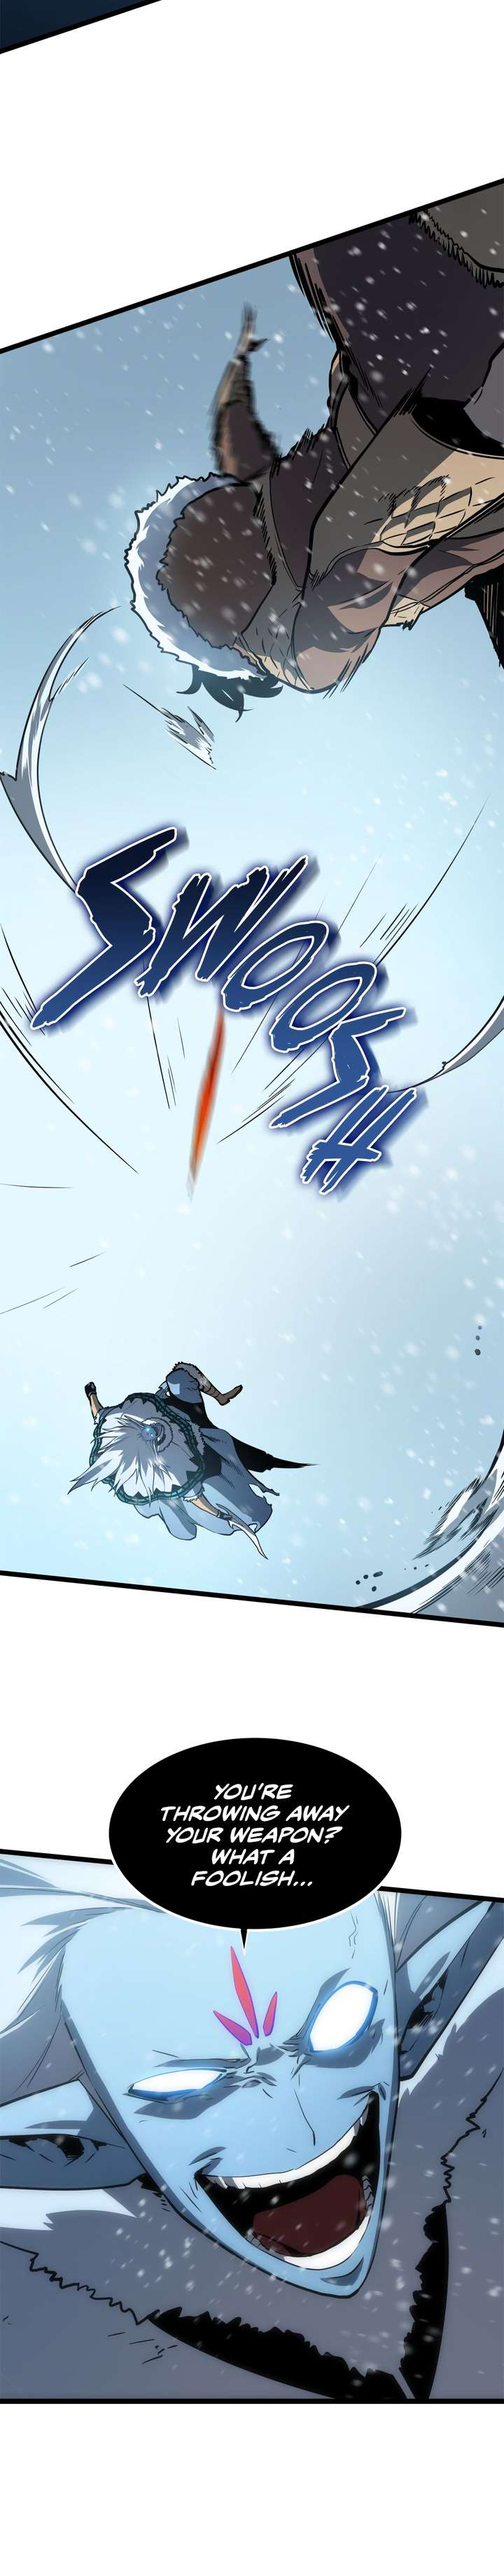 Solo Leveling Chapter 54 Page 16